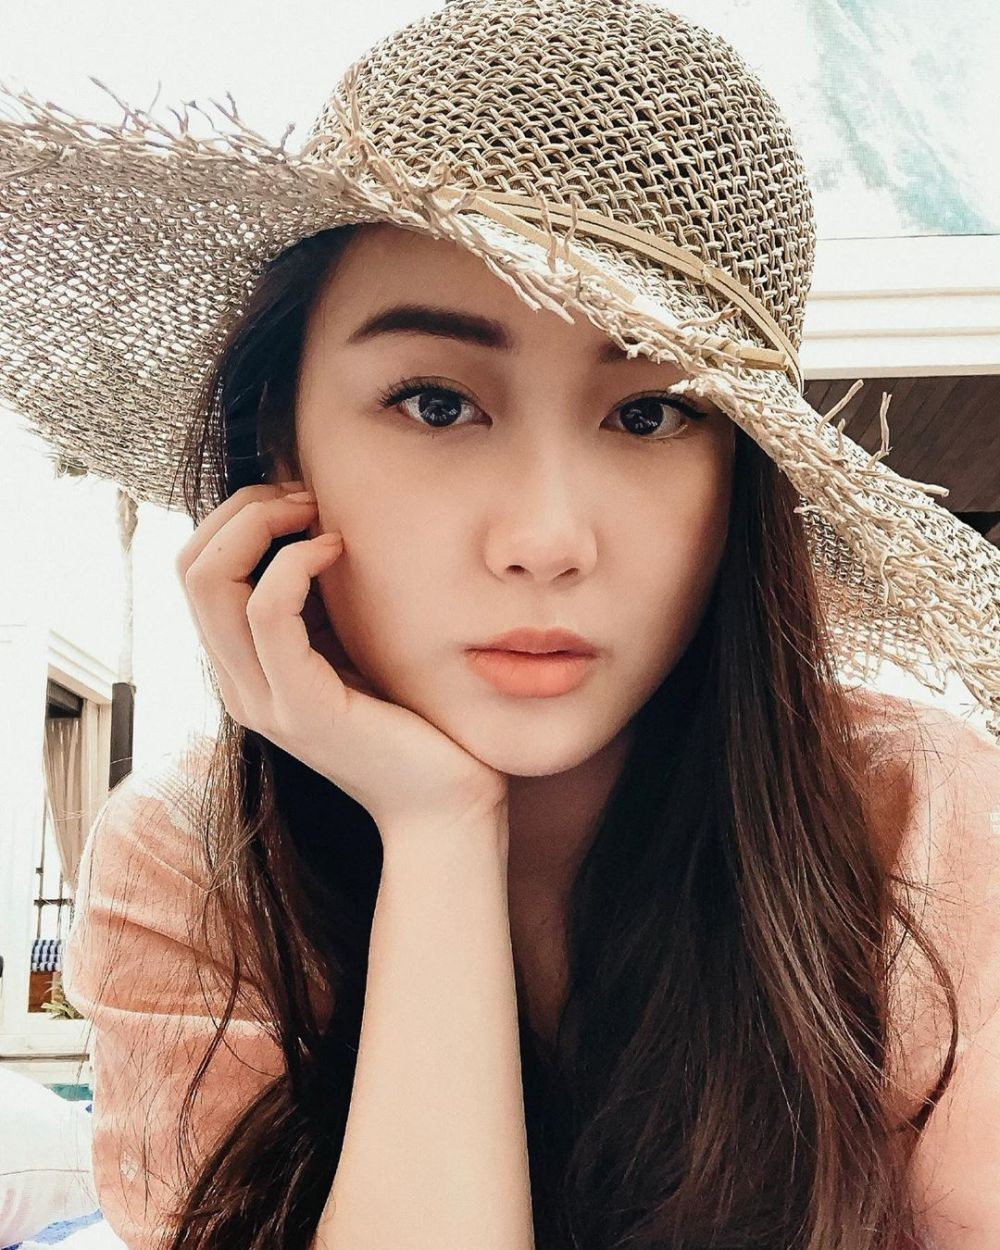 Bak Artis Korea, Ini 10 Pesona Karen Vendela Tunangan Boy William